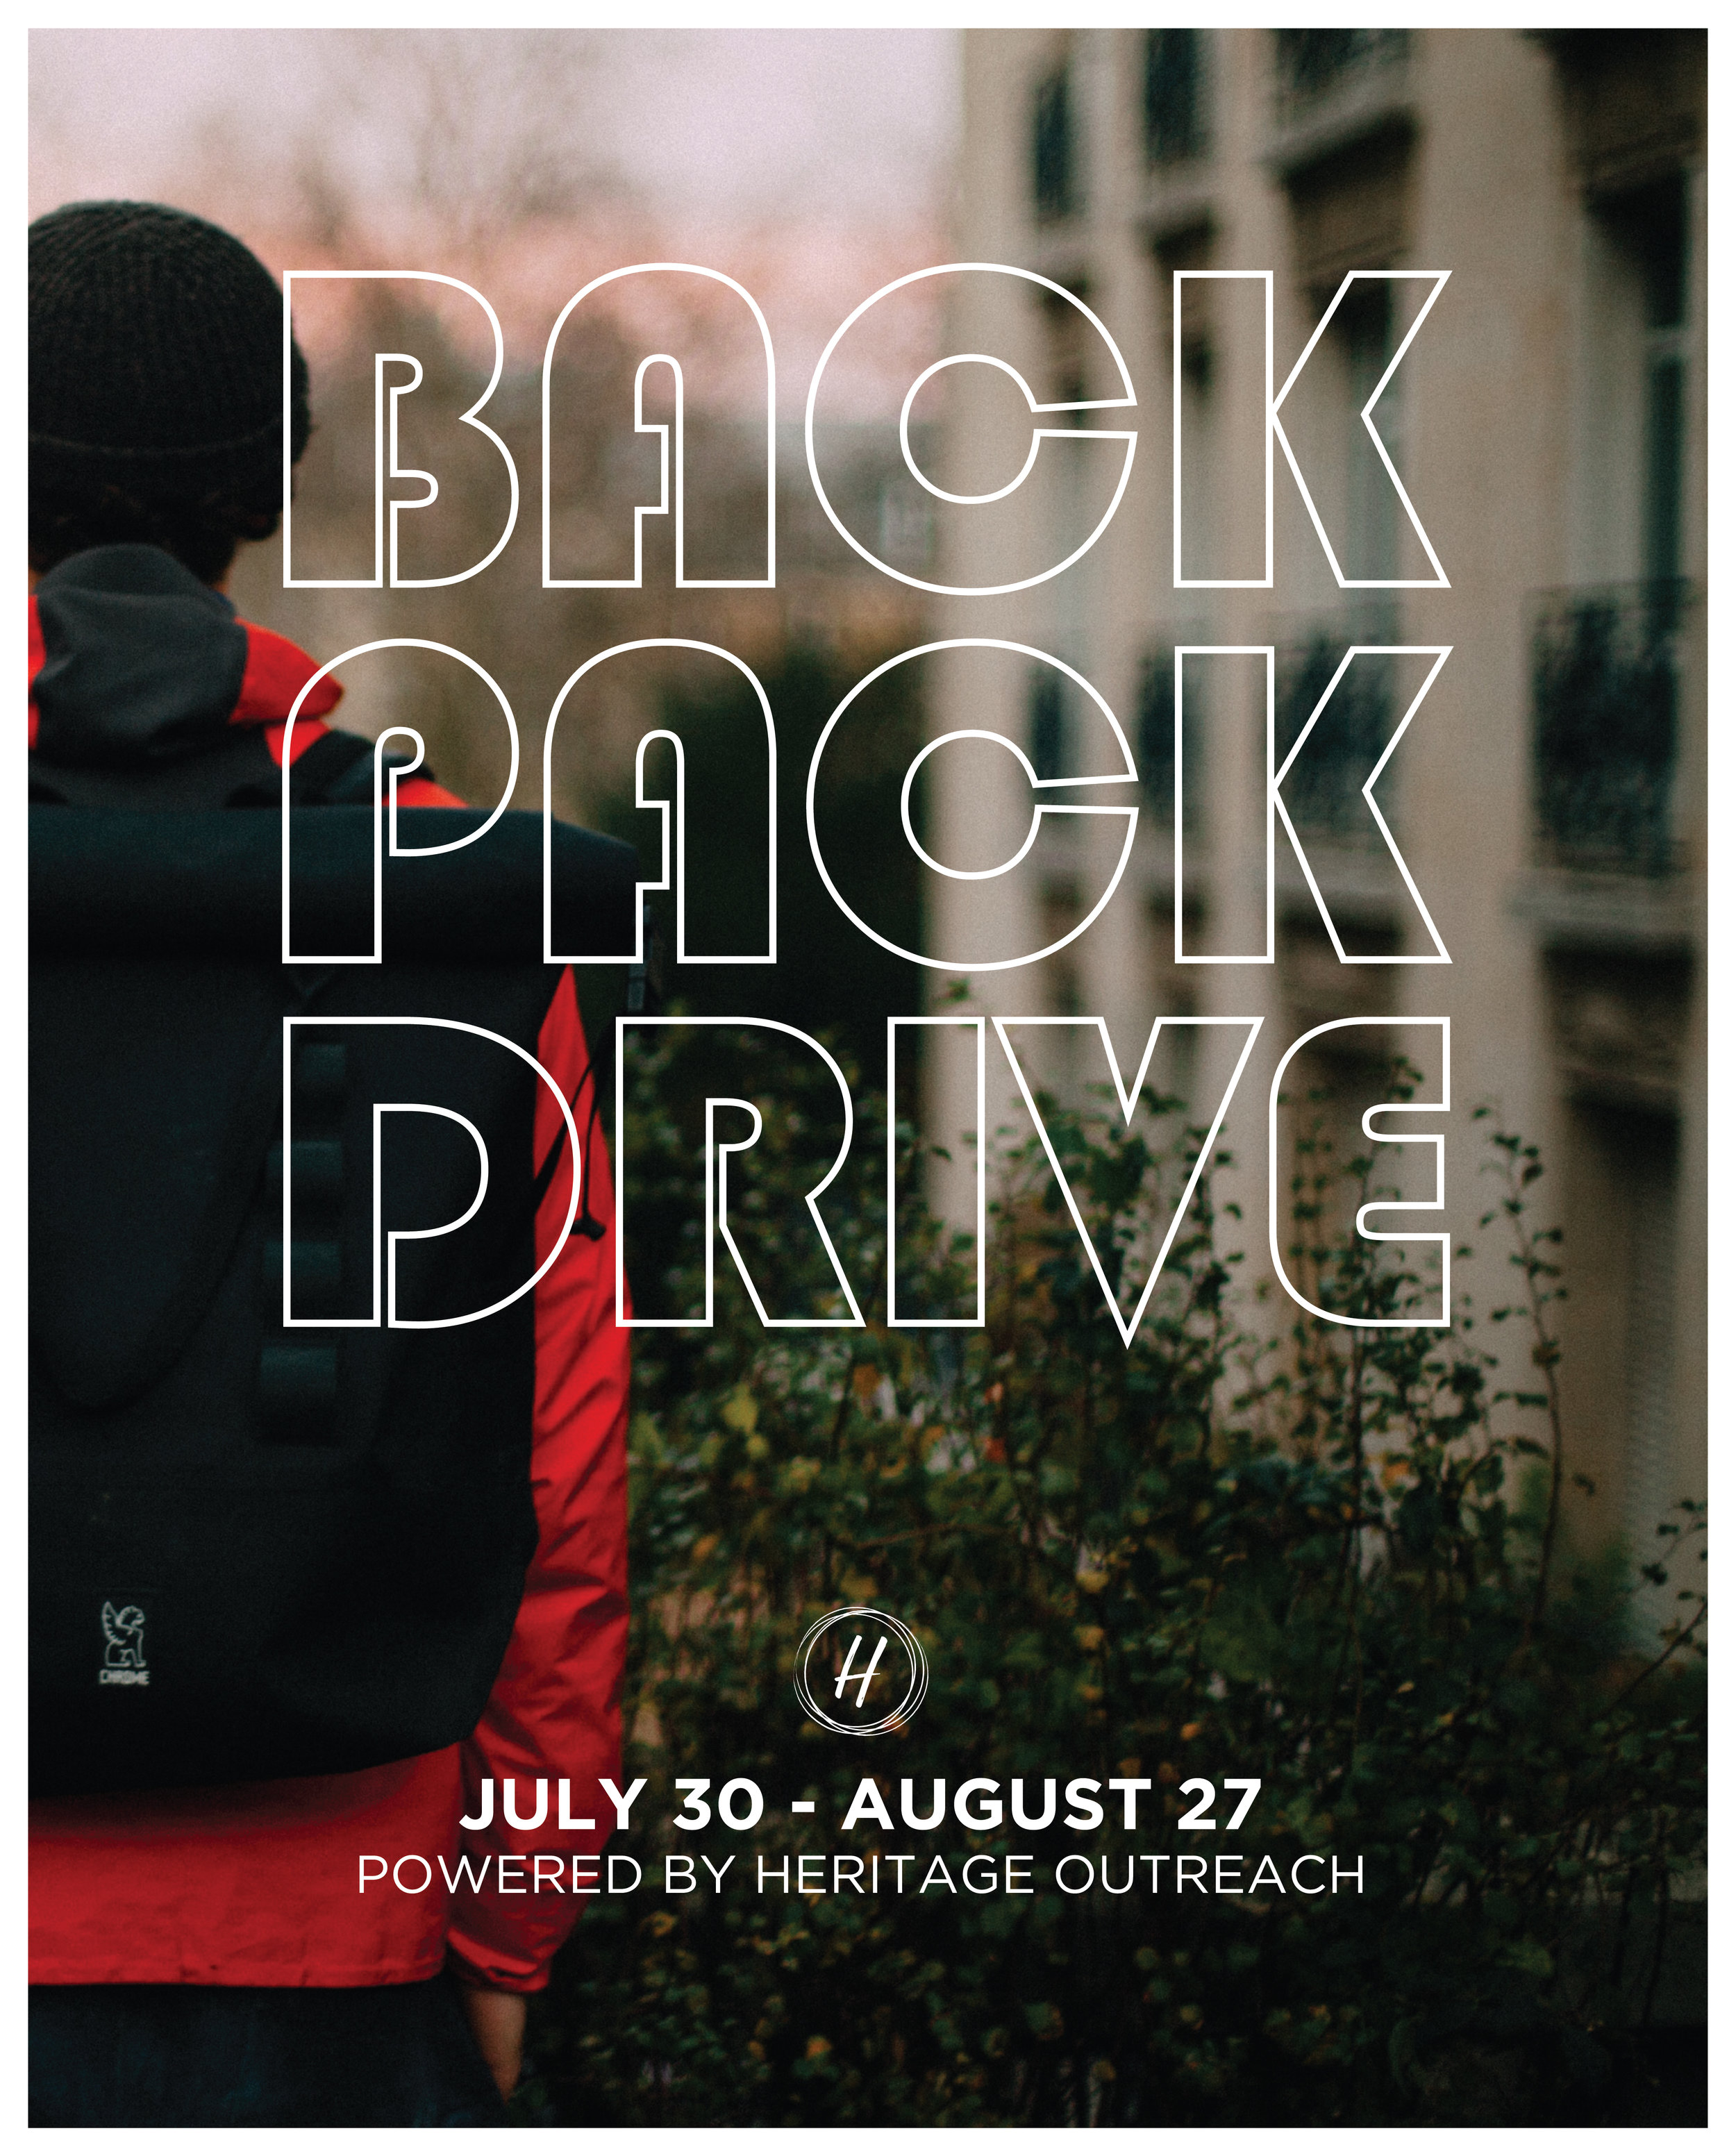 Backpack Drive Social_7.jpg